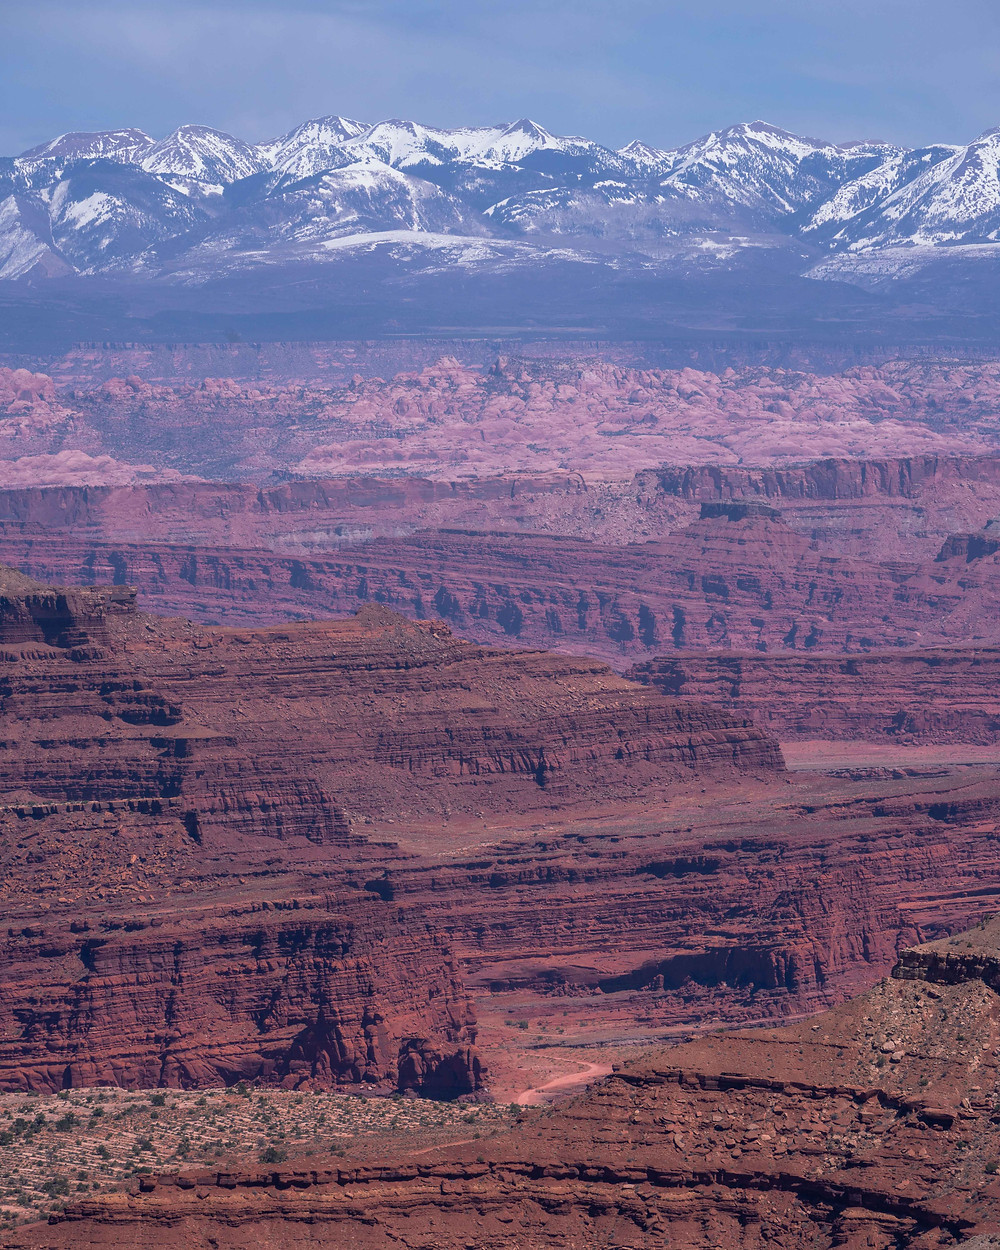 Red and purple canyon cliffs in front of the snow capped mountain range backdrop of Moab